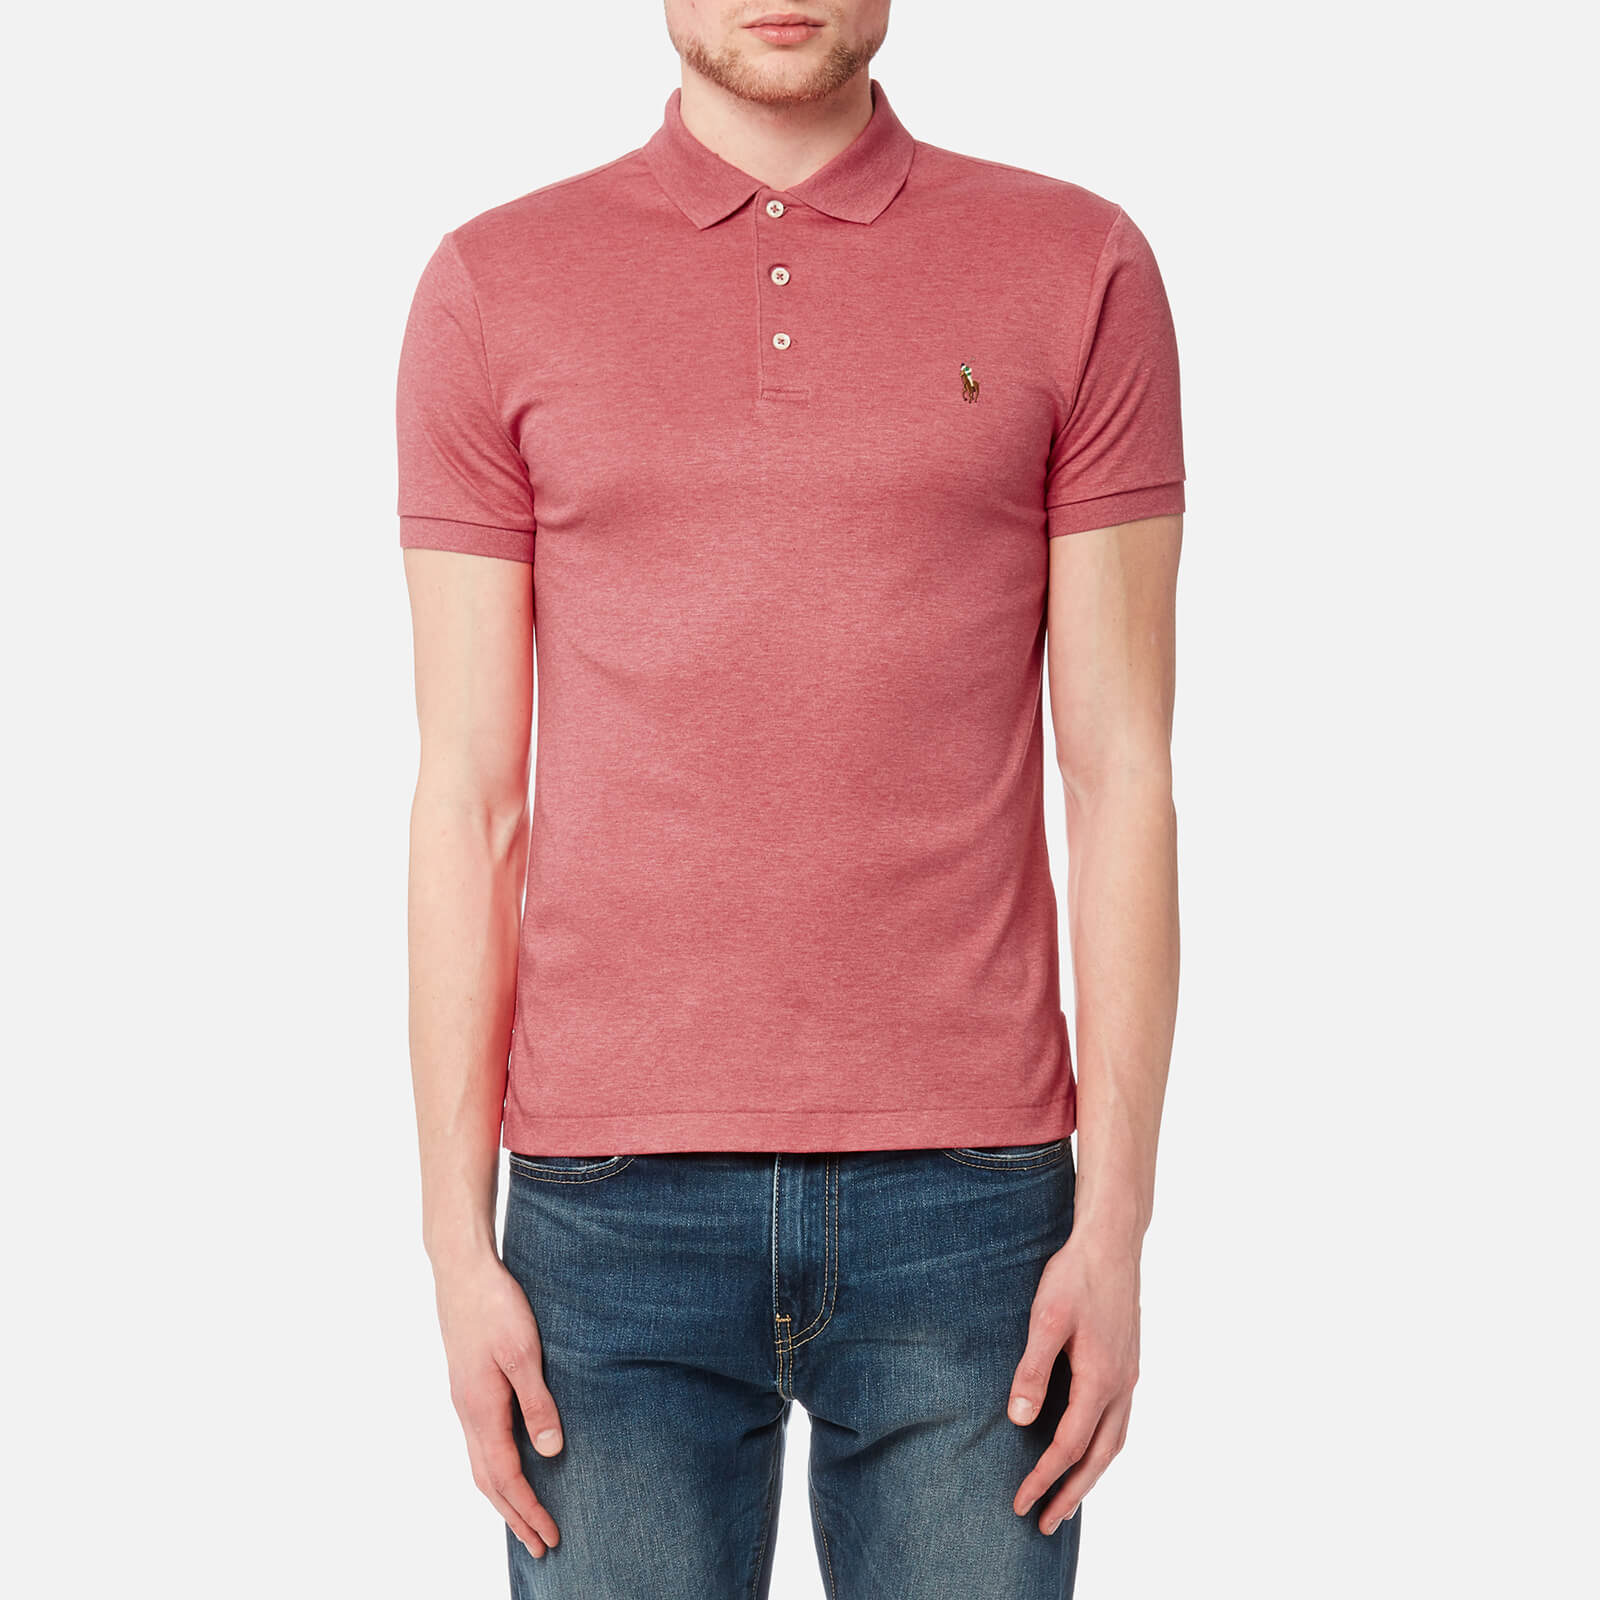 9a211eca Polo Ralph Lauren Men's Short Sleeve Pima Polo Shirt - Salmon Heather - Free  UK Delivery over £50